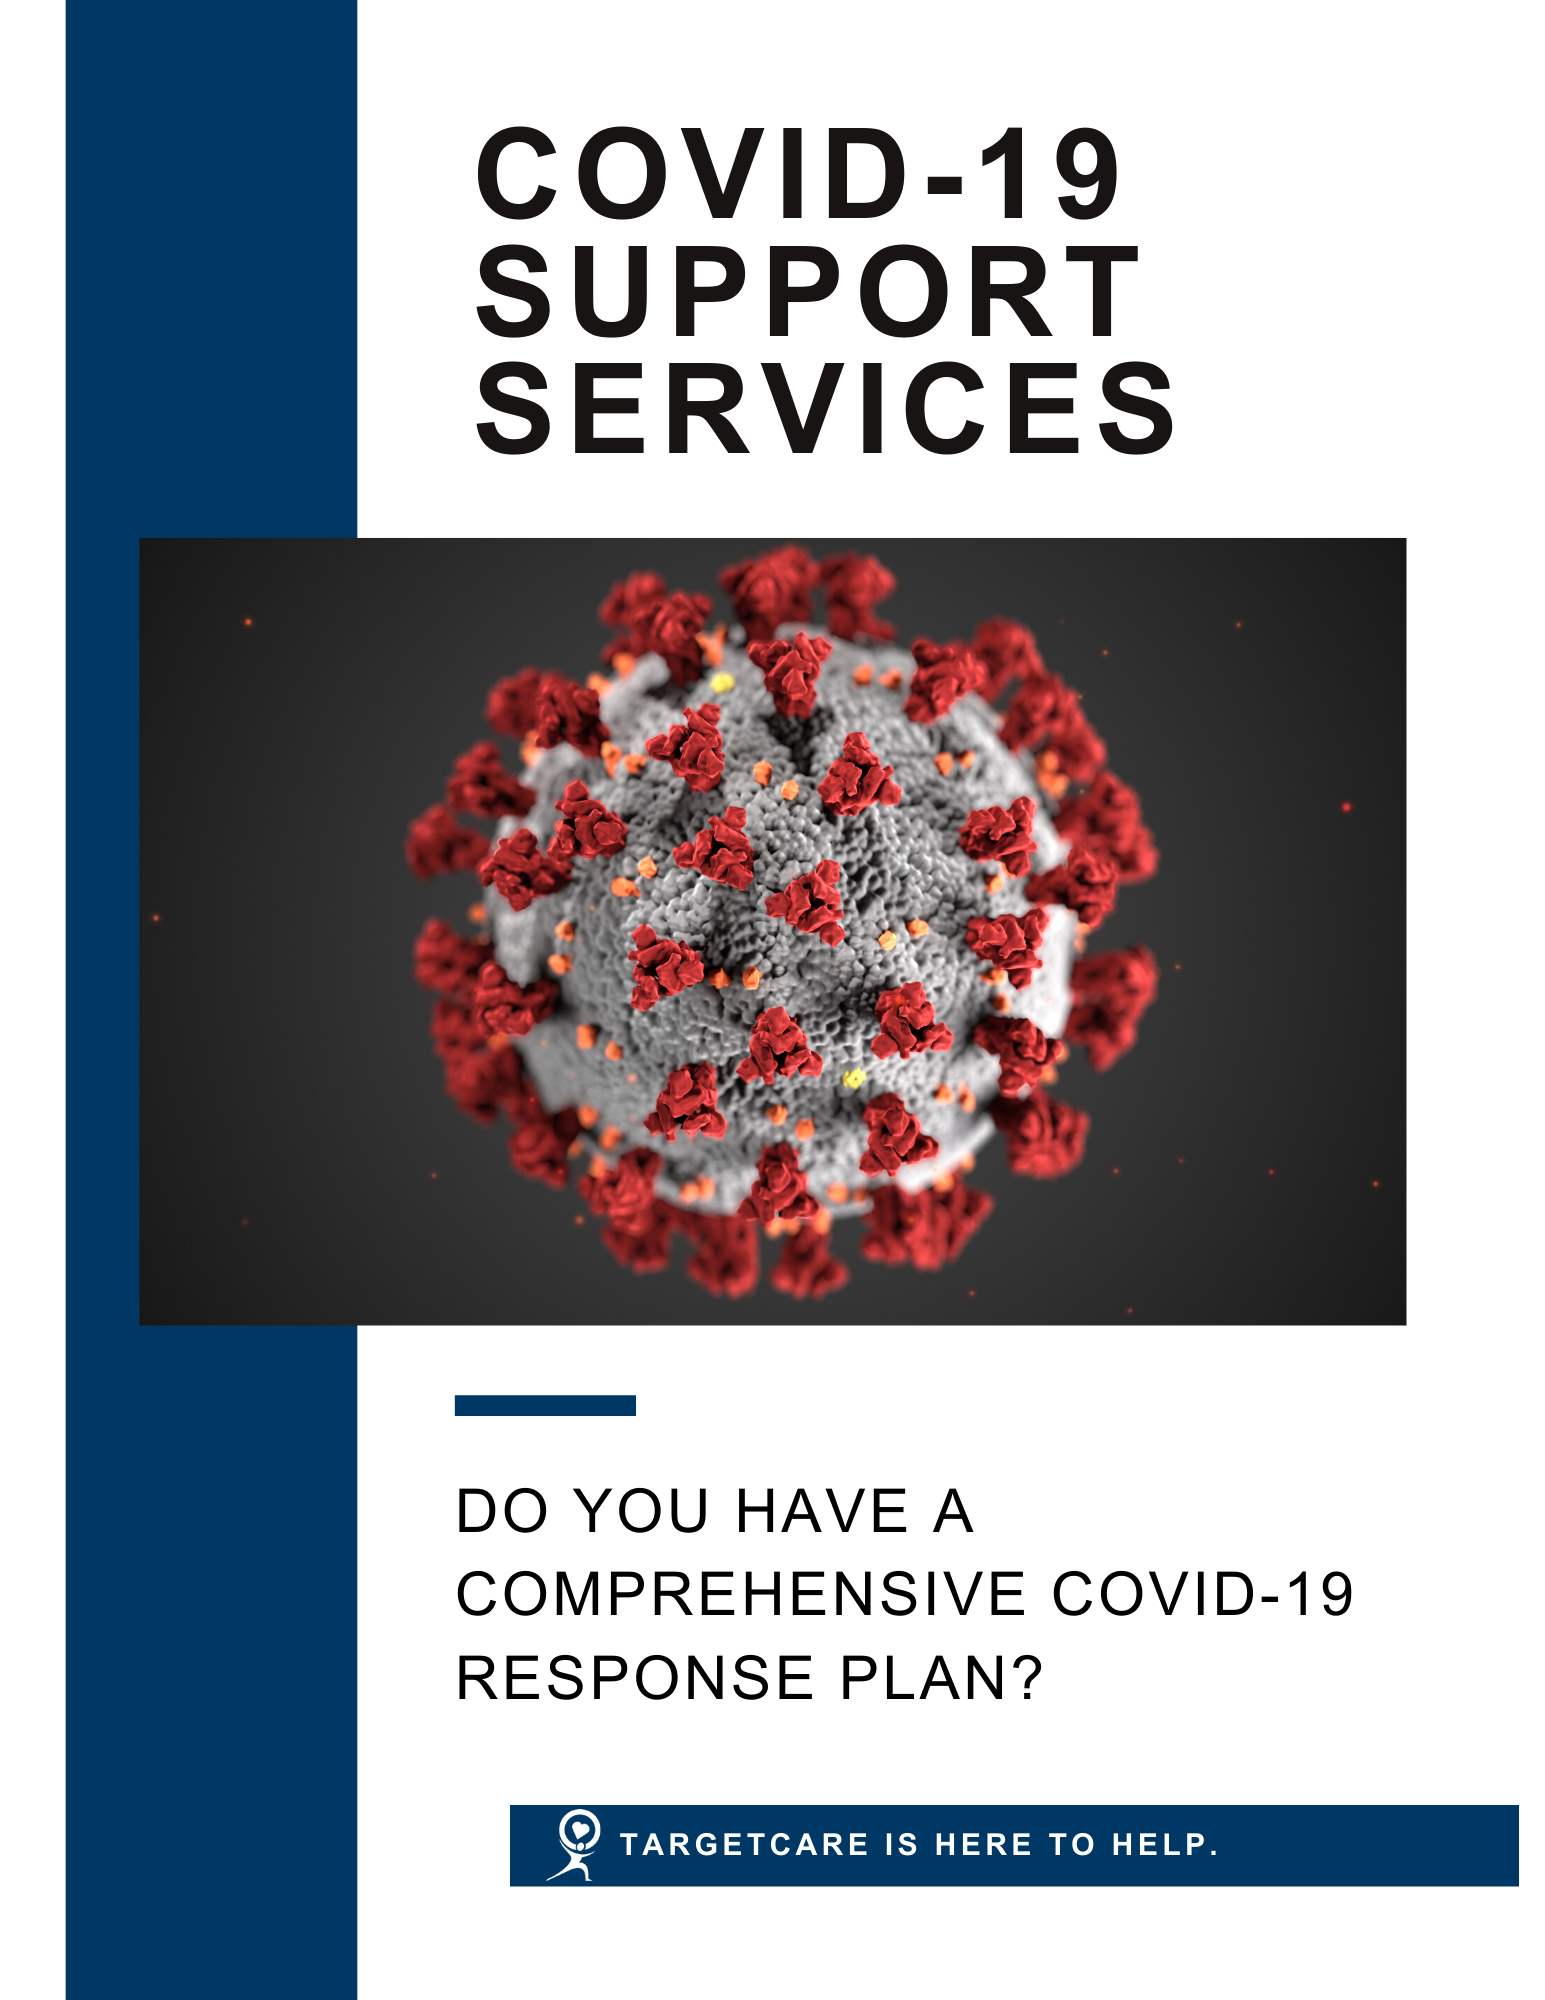 TargetCare COVID-19 Support Services